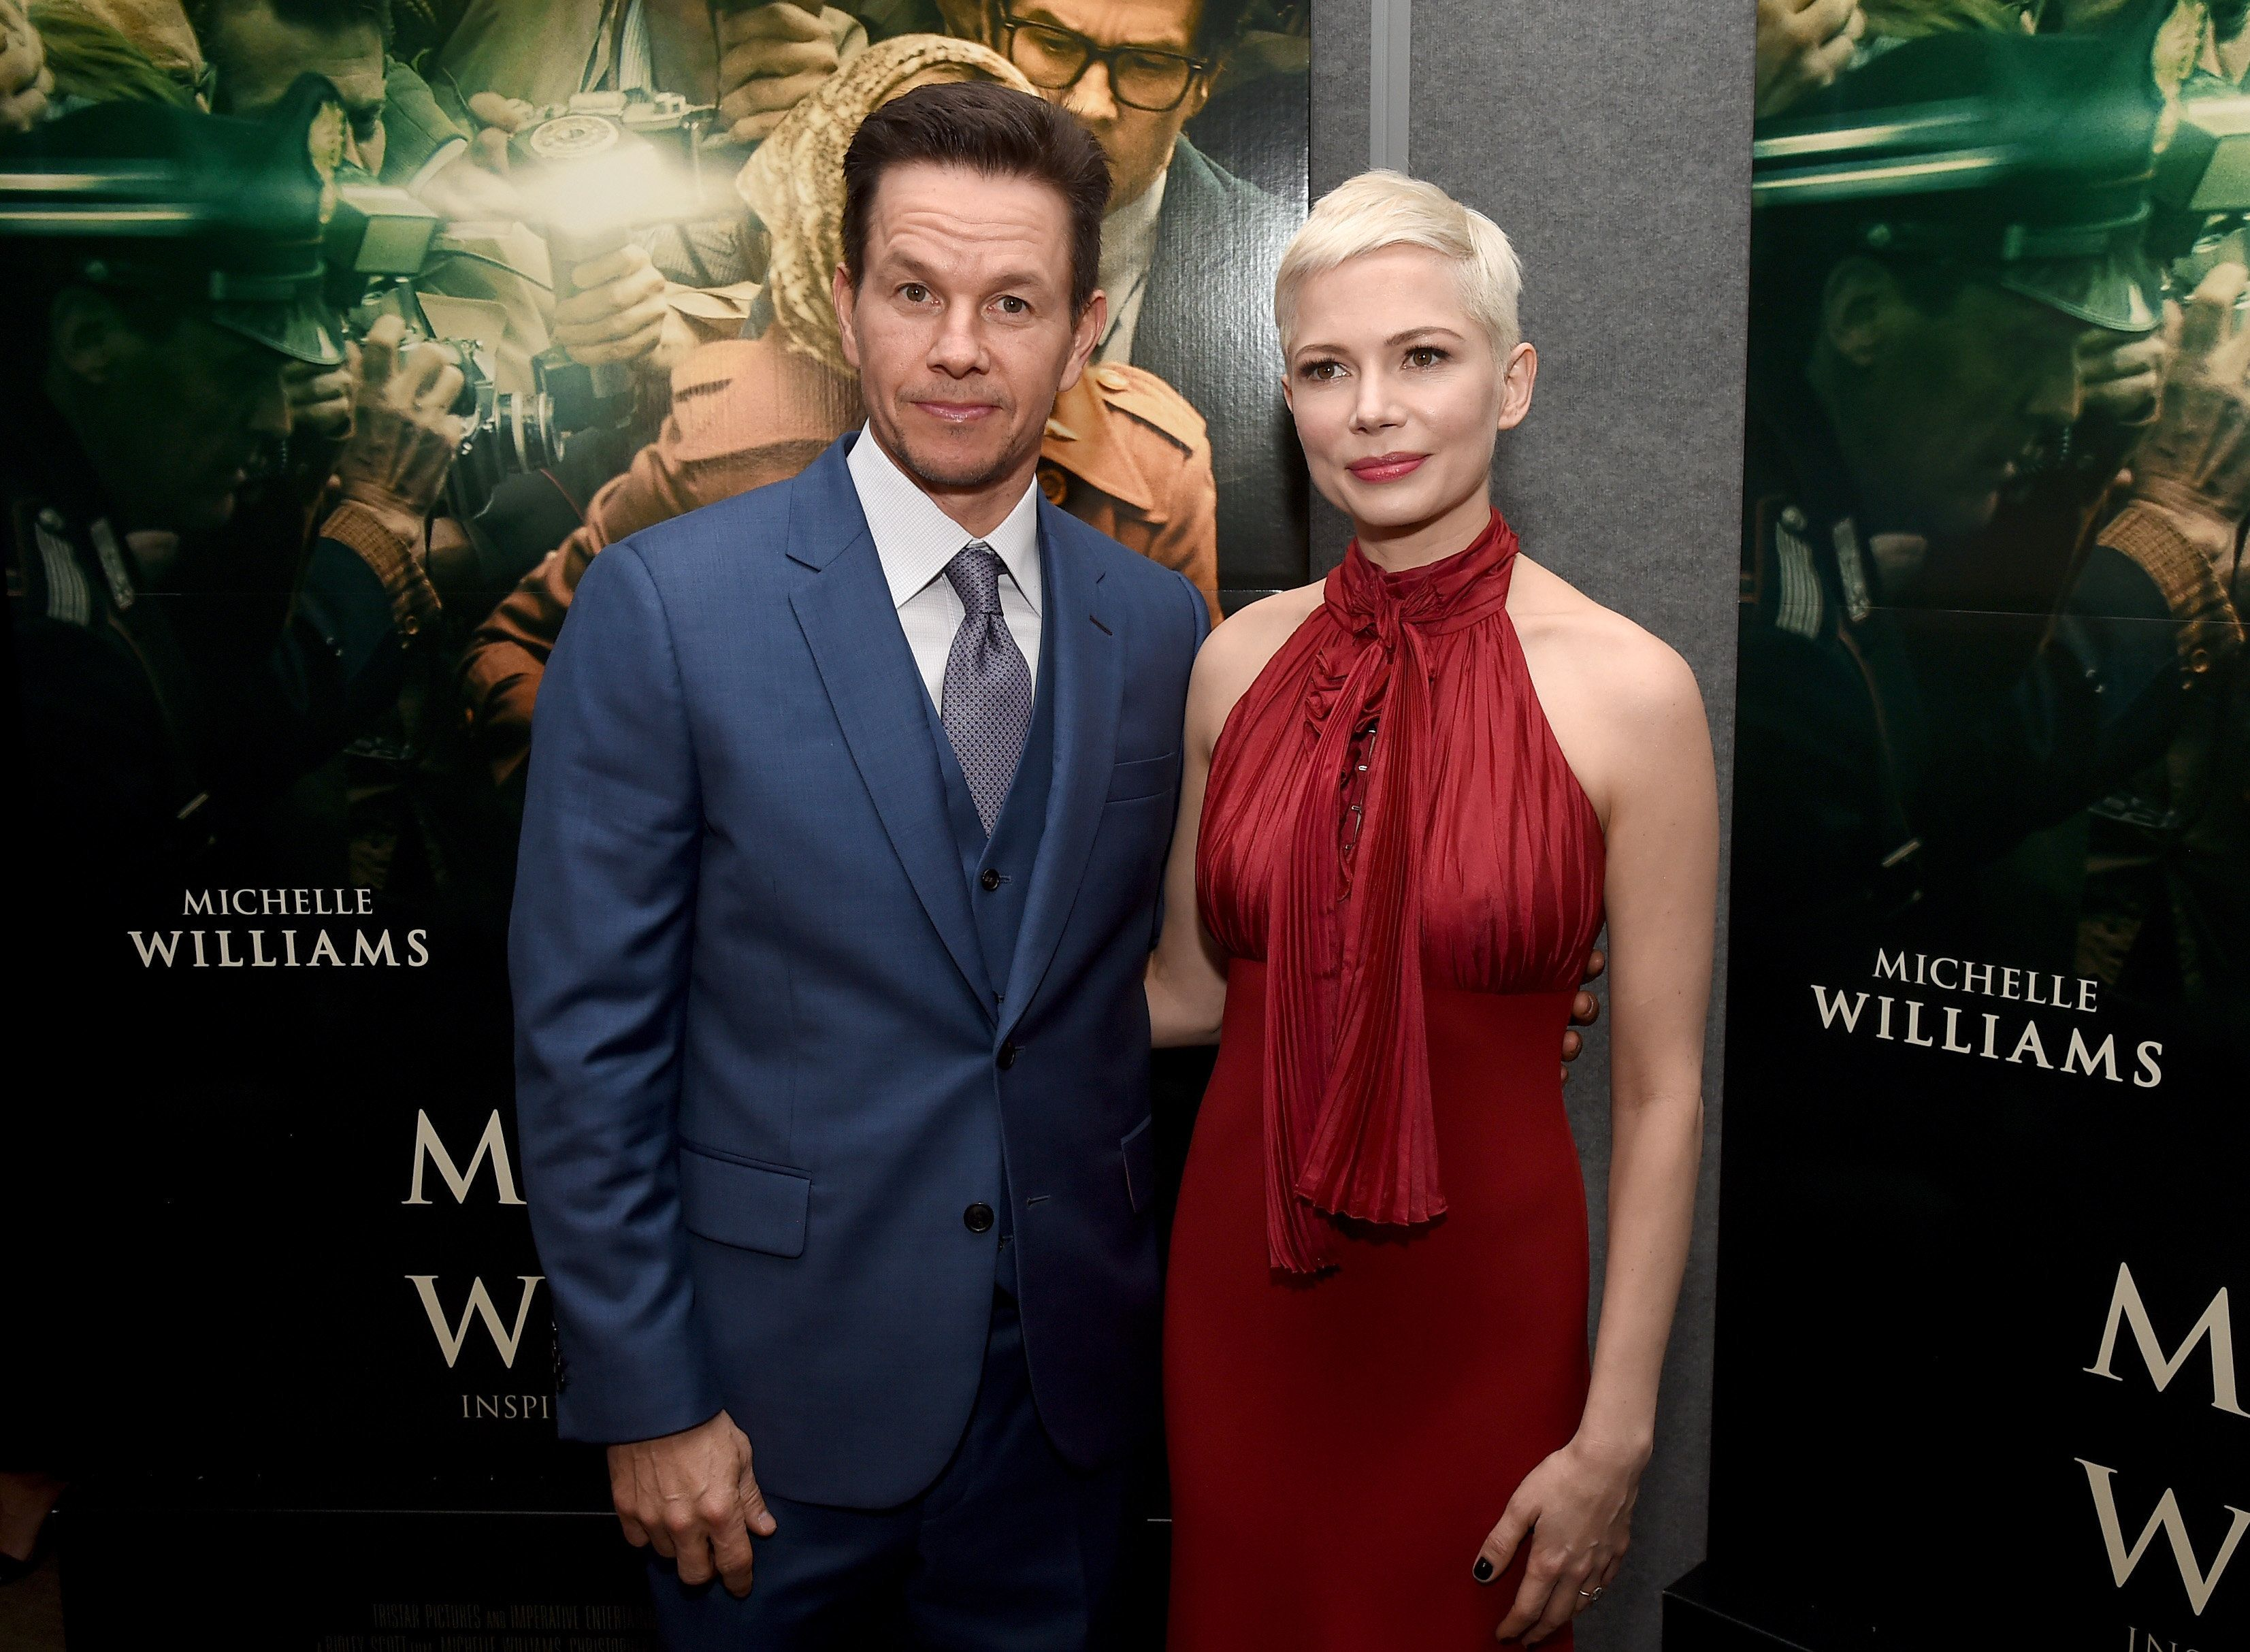 Mark Wahlberg Made Over 1000 Times More Than Michelle Williams For 'All The Money'